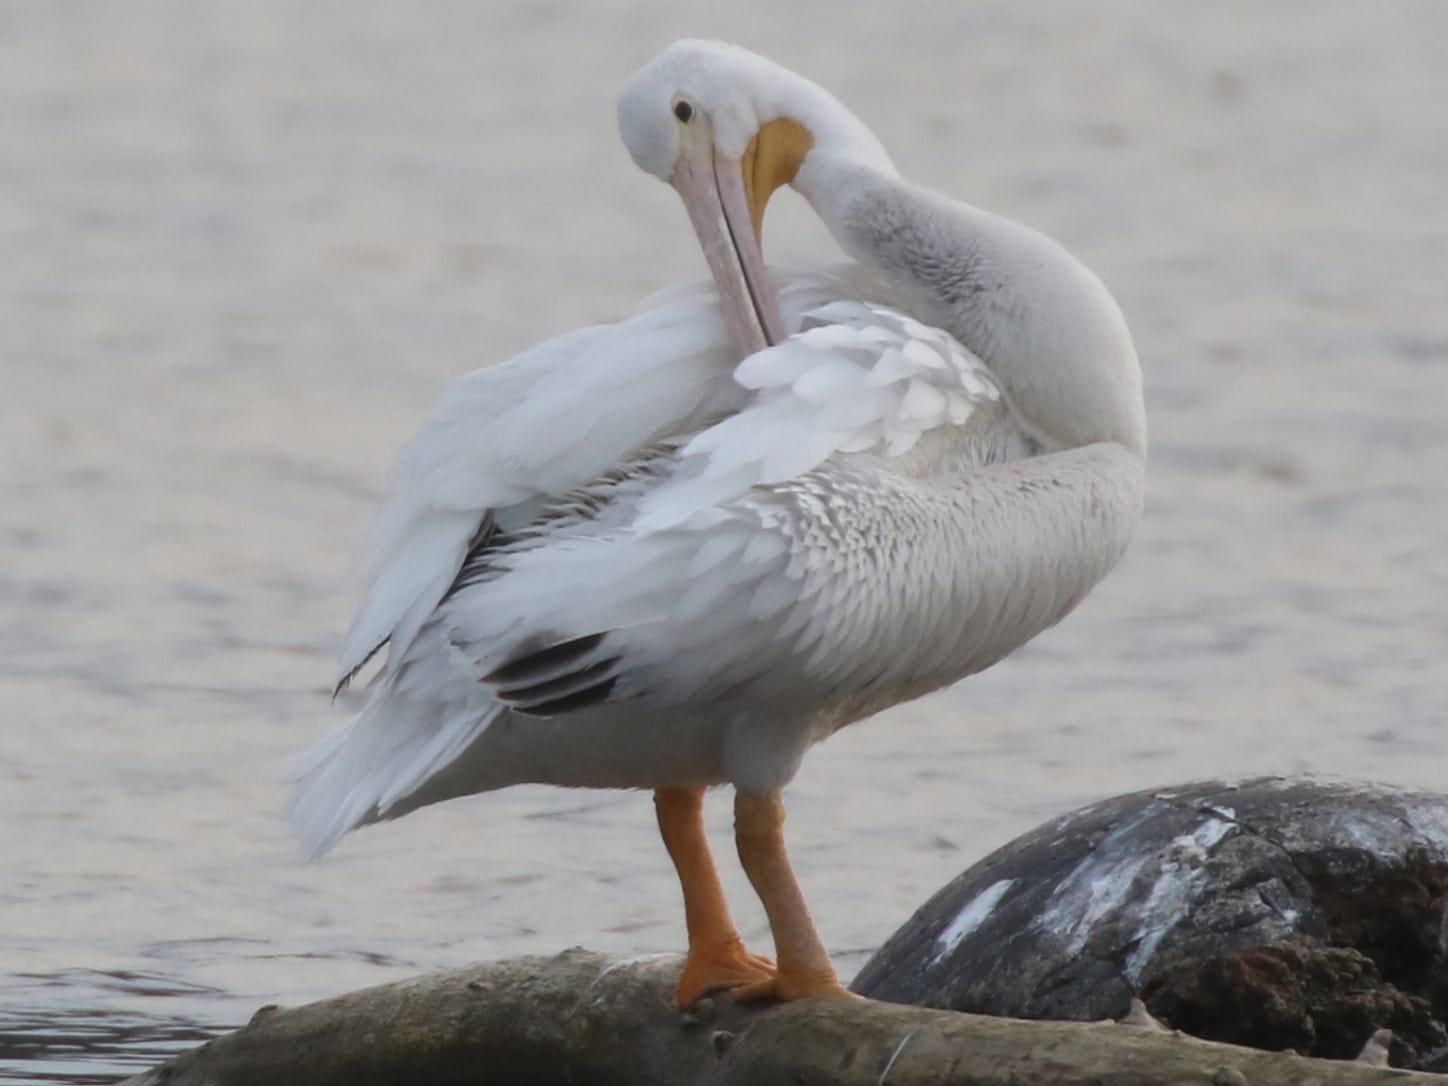 The  American White Pelican aren't normally seen in this area.